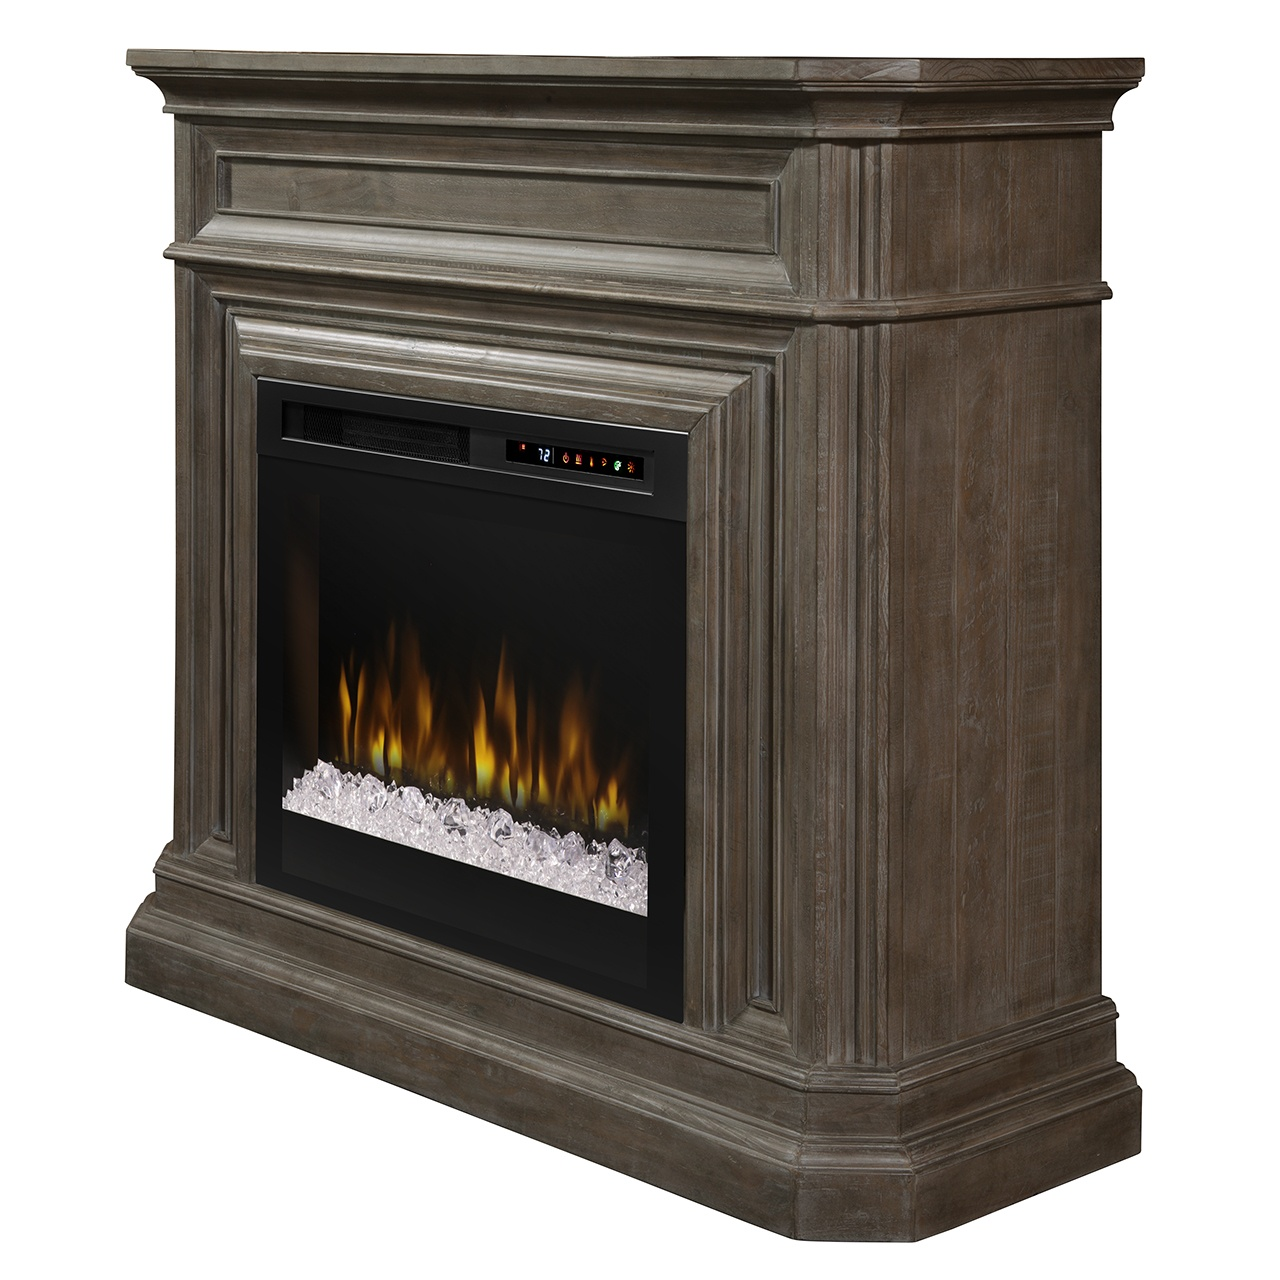 Dimplex ophelia gds28g8 1995bi electric fireplace with - Going to bed with embers in fireplace ...